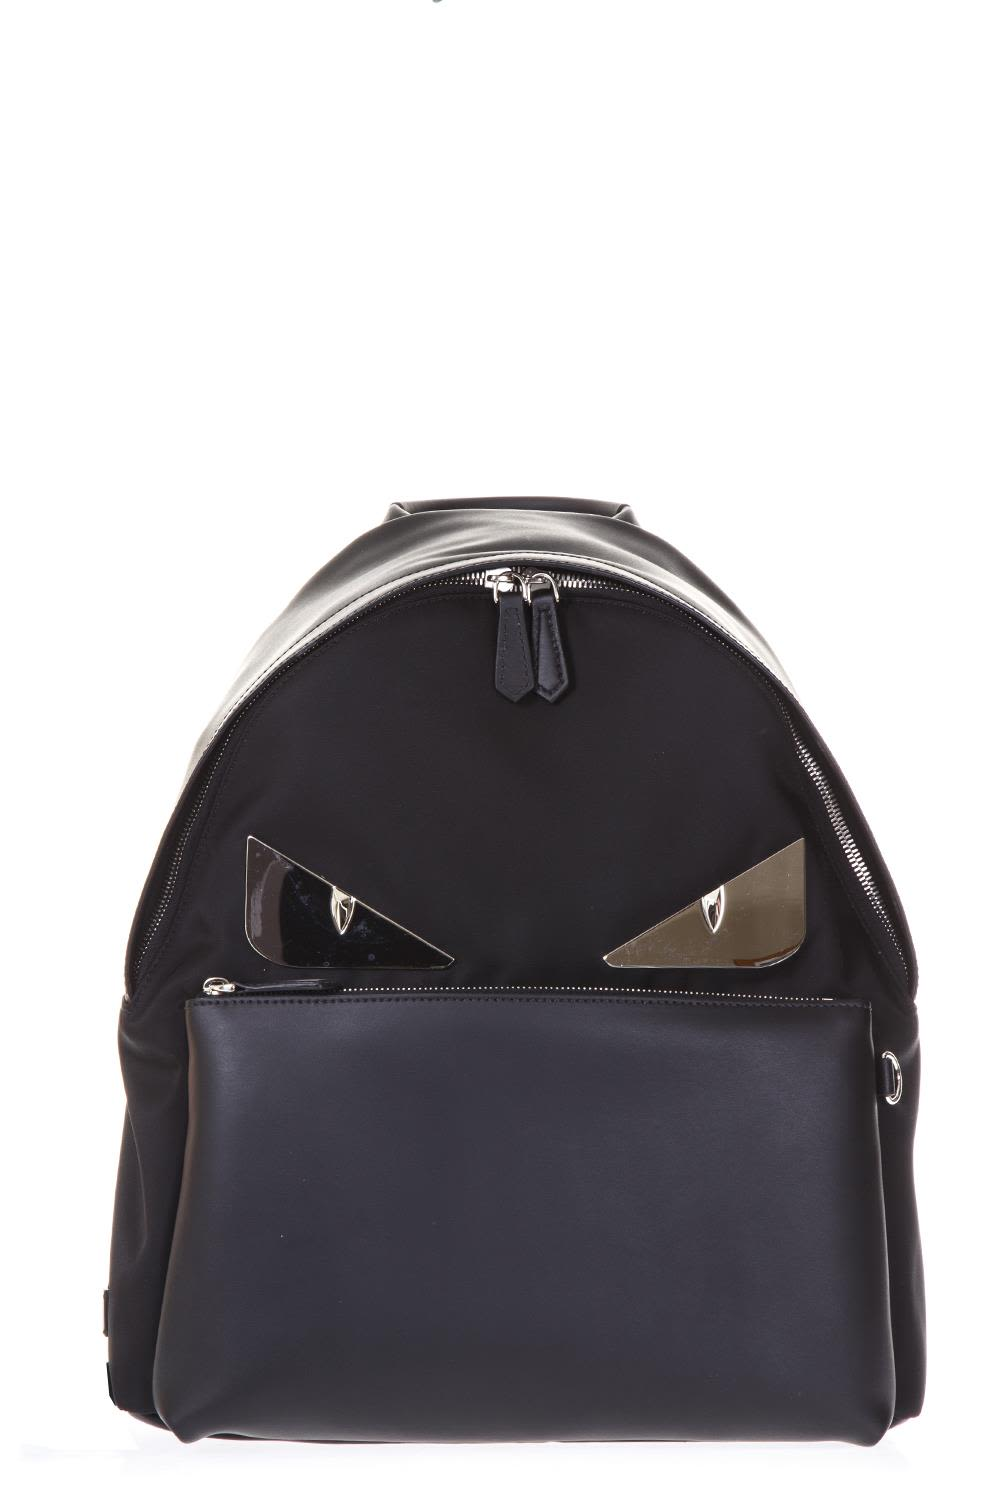 Fendi Bag Bugs Black Leather & Nylon Backpack